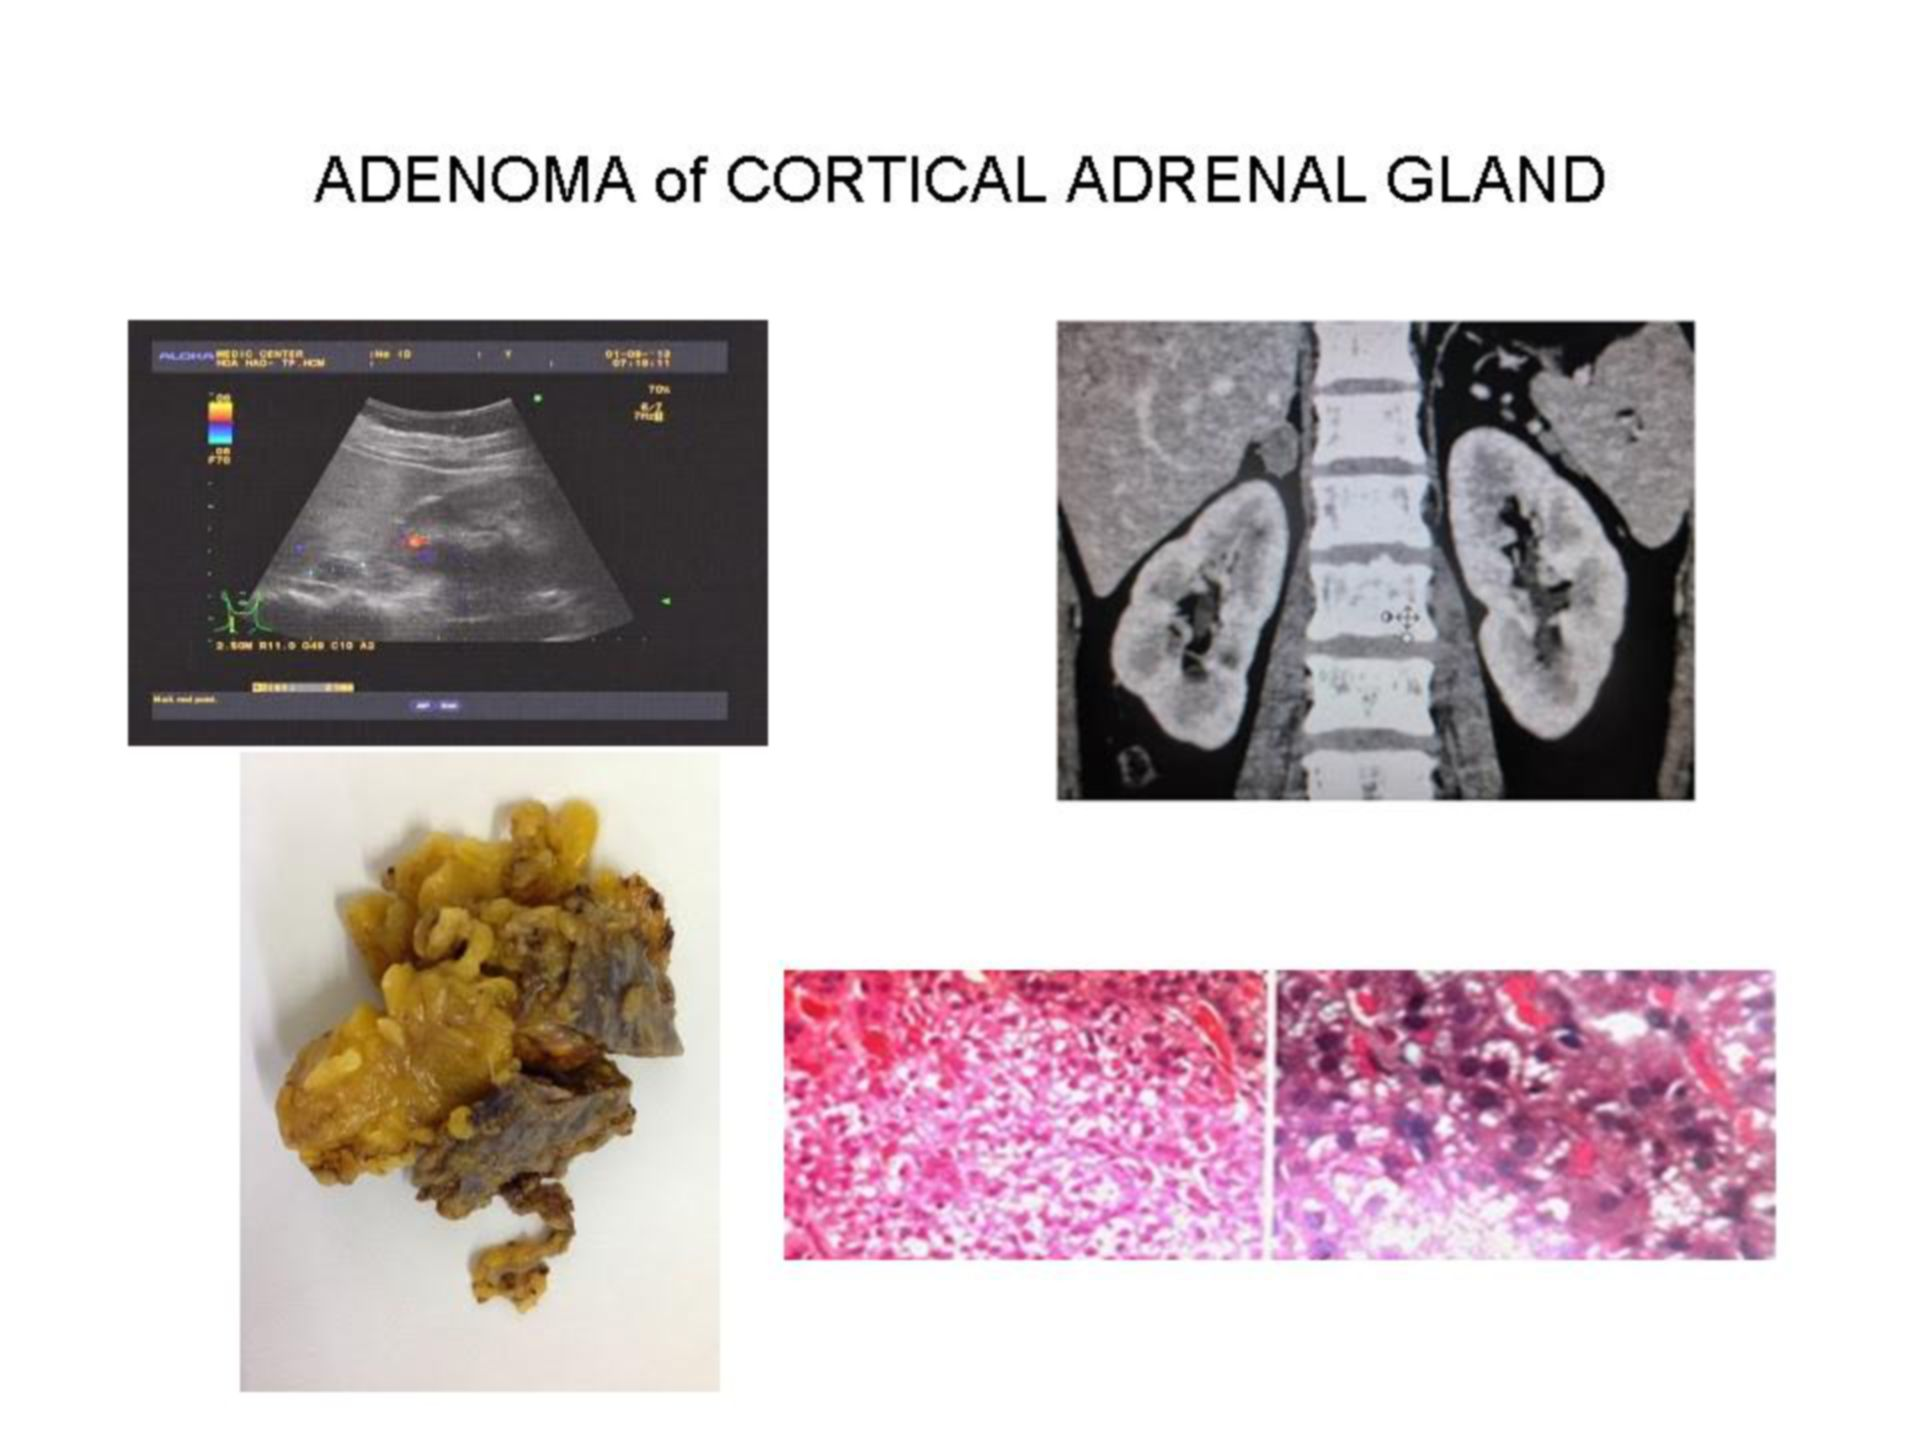 Adenoma of cortical adrenal gland